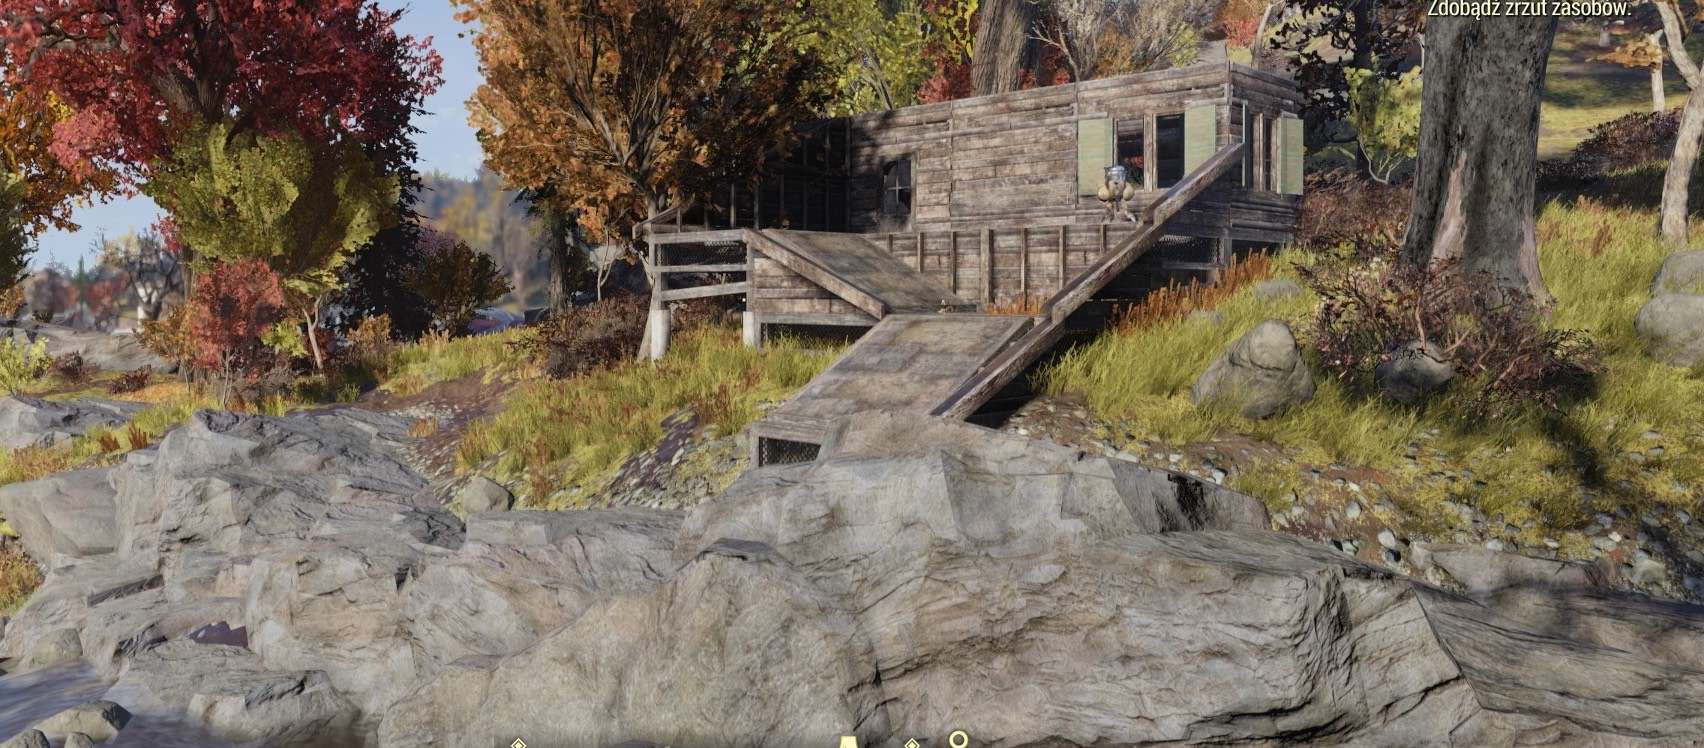 Scandal Granda Draka They Stole My Beautiful Home In Fallout 76